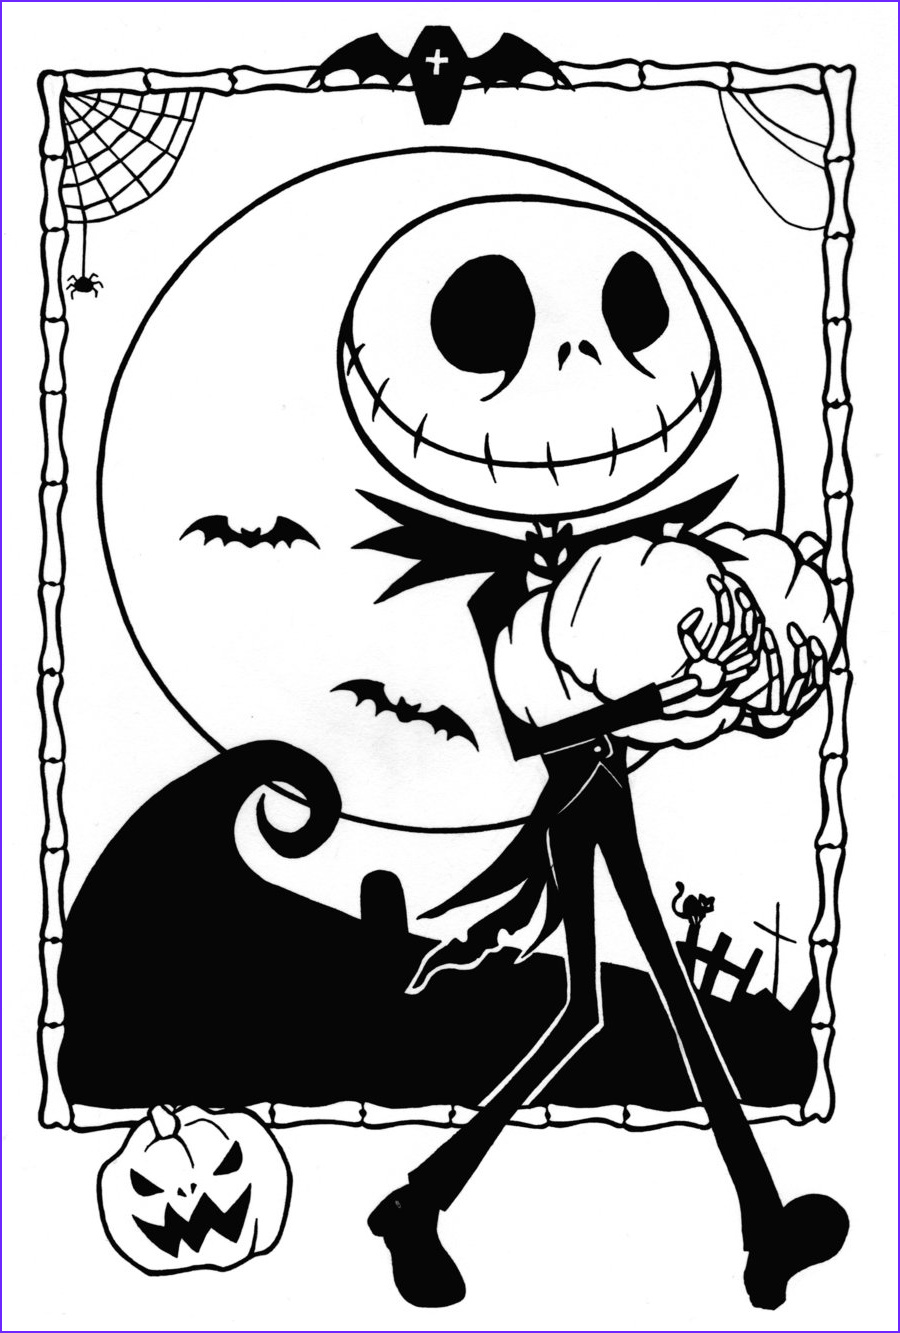 Nightmare before Christmas Coloring Pages Beautiful Collection Free Printable Nightmare before Christmas Coloring Pages